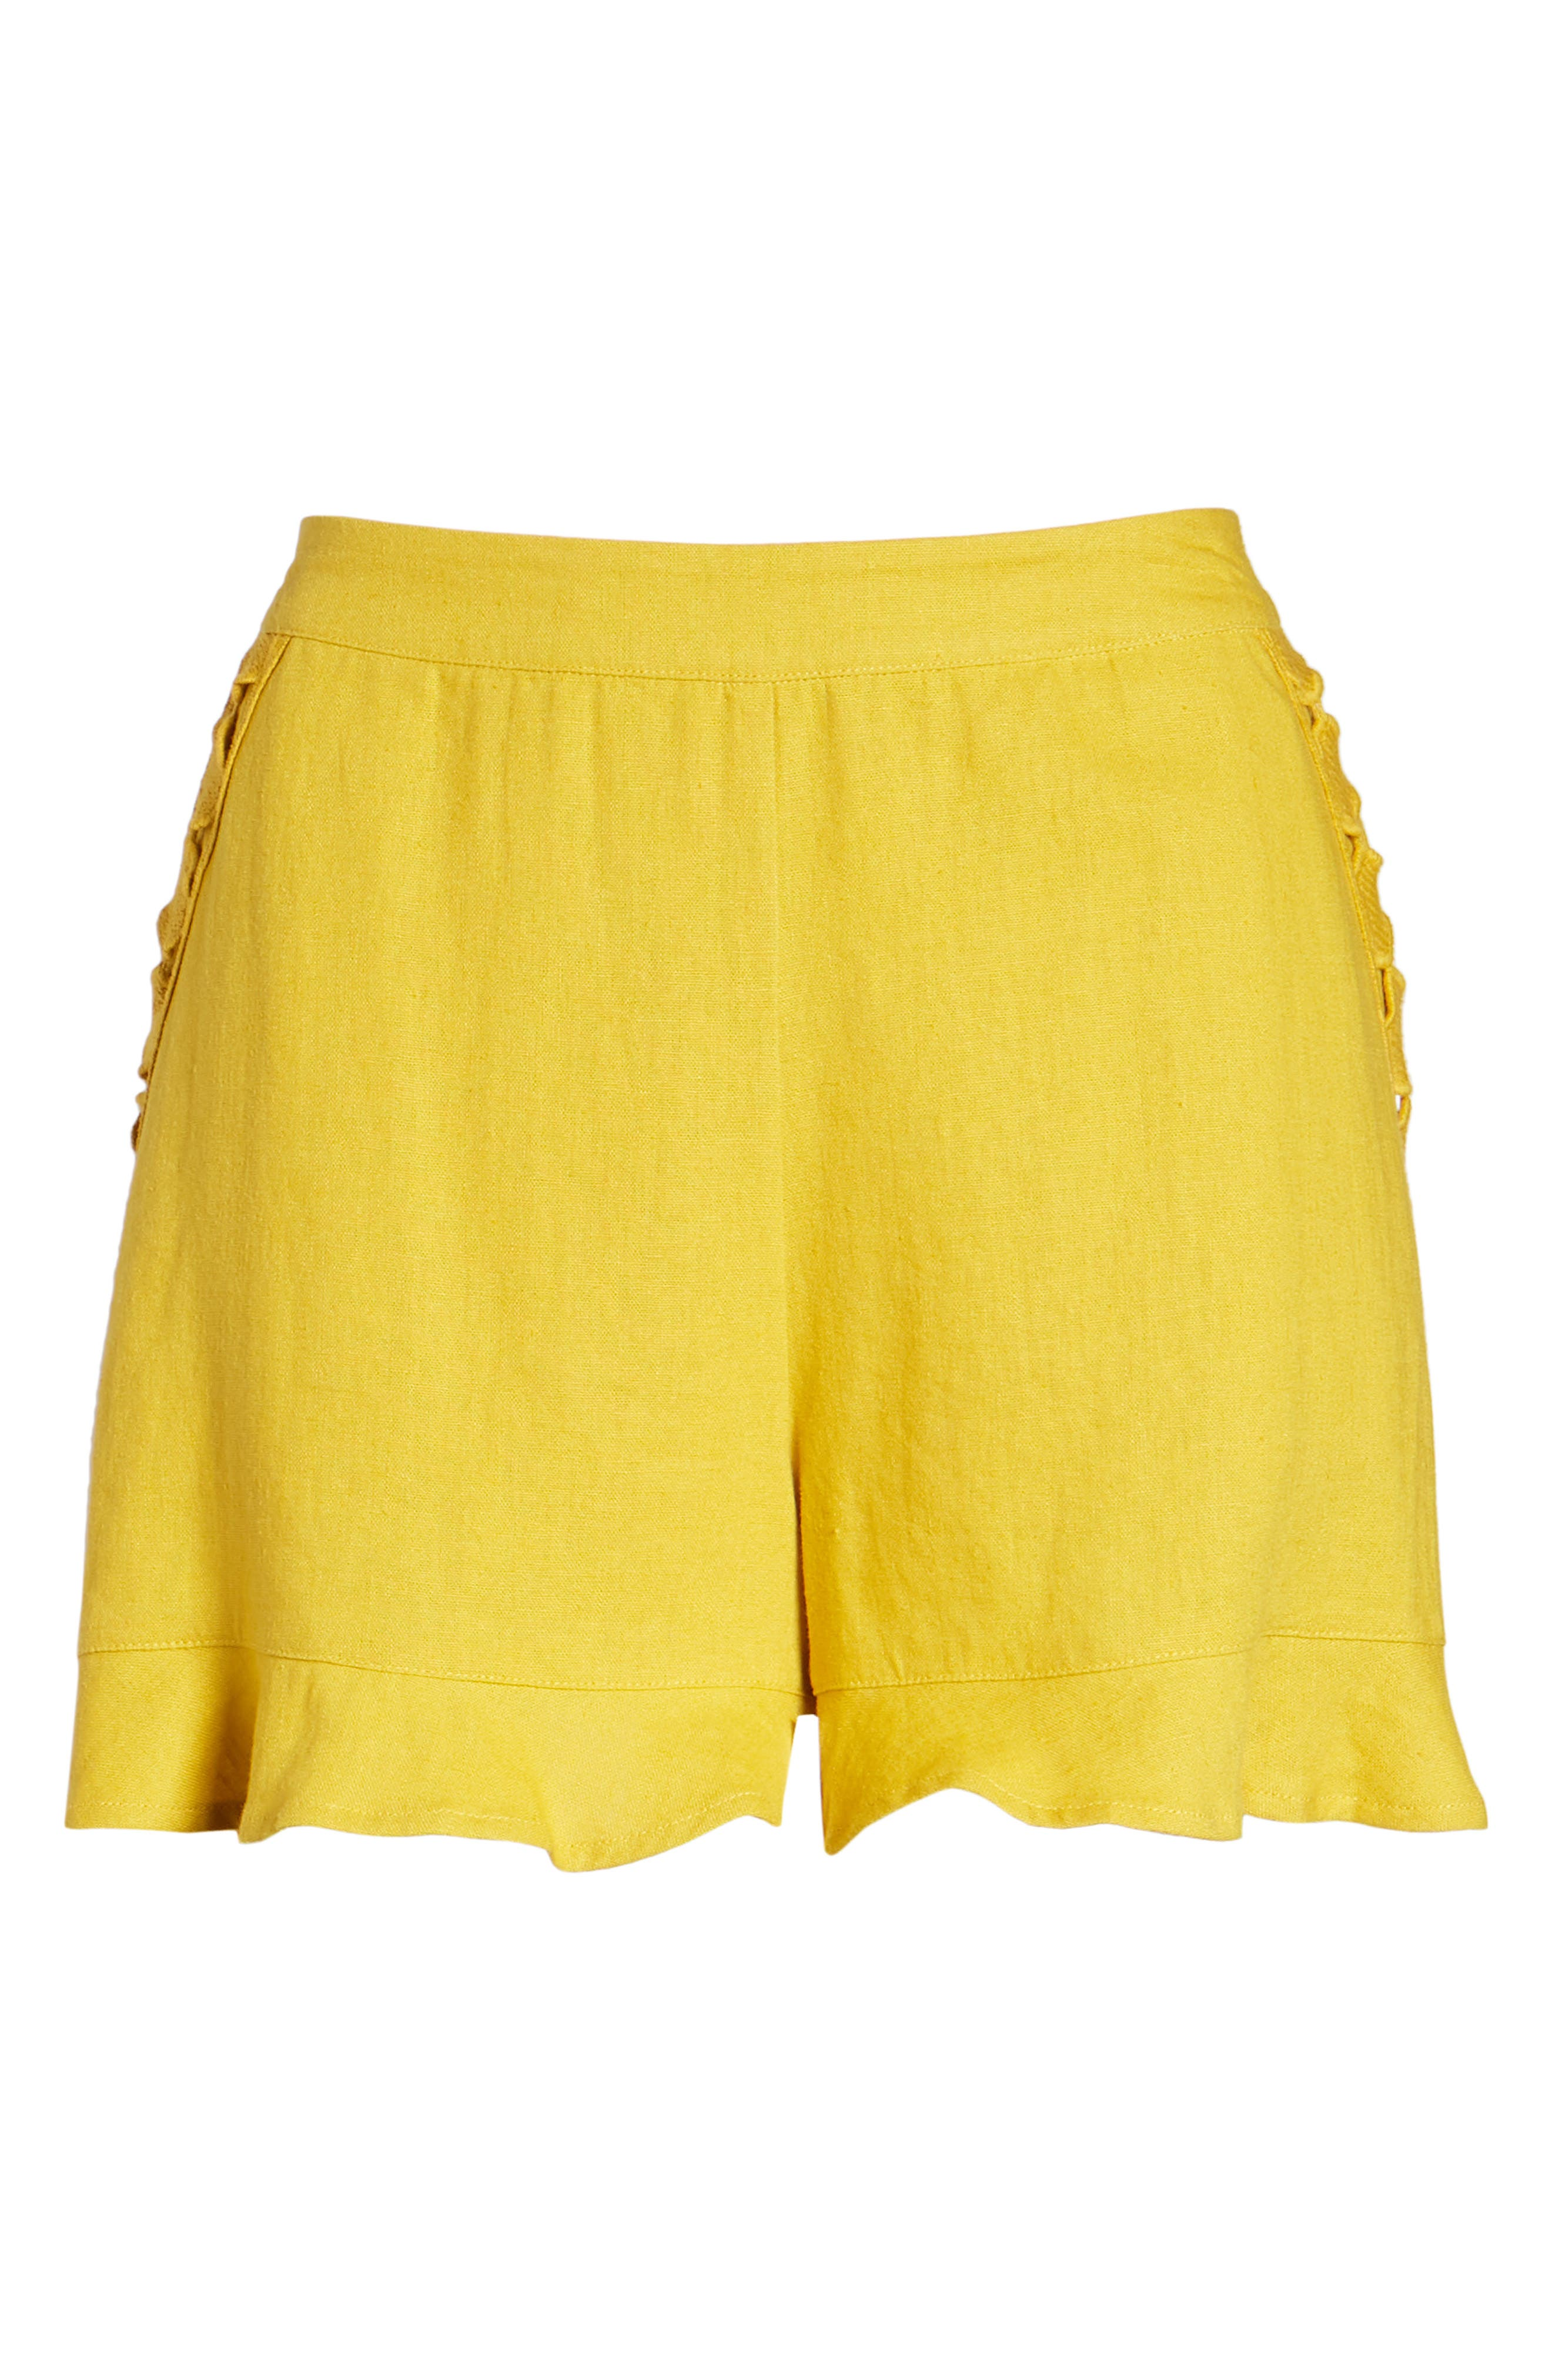 High Rise Ruffle Shorts,                             Alternate thumbnail 6, color,